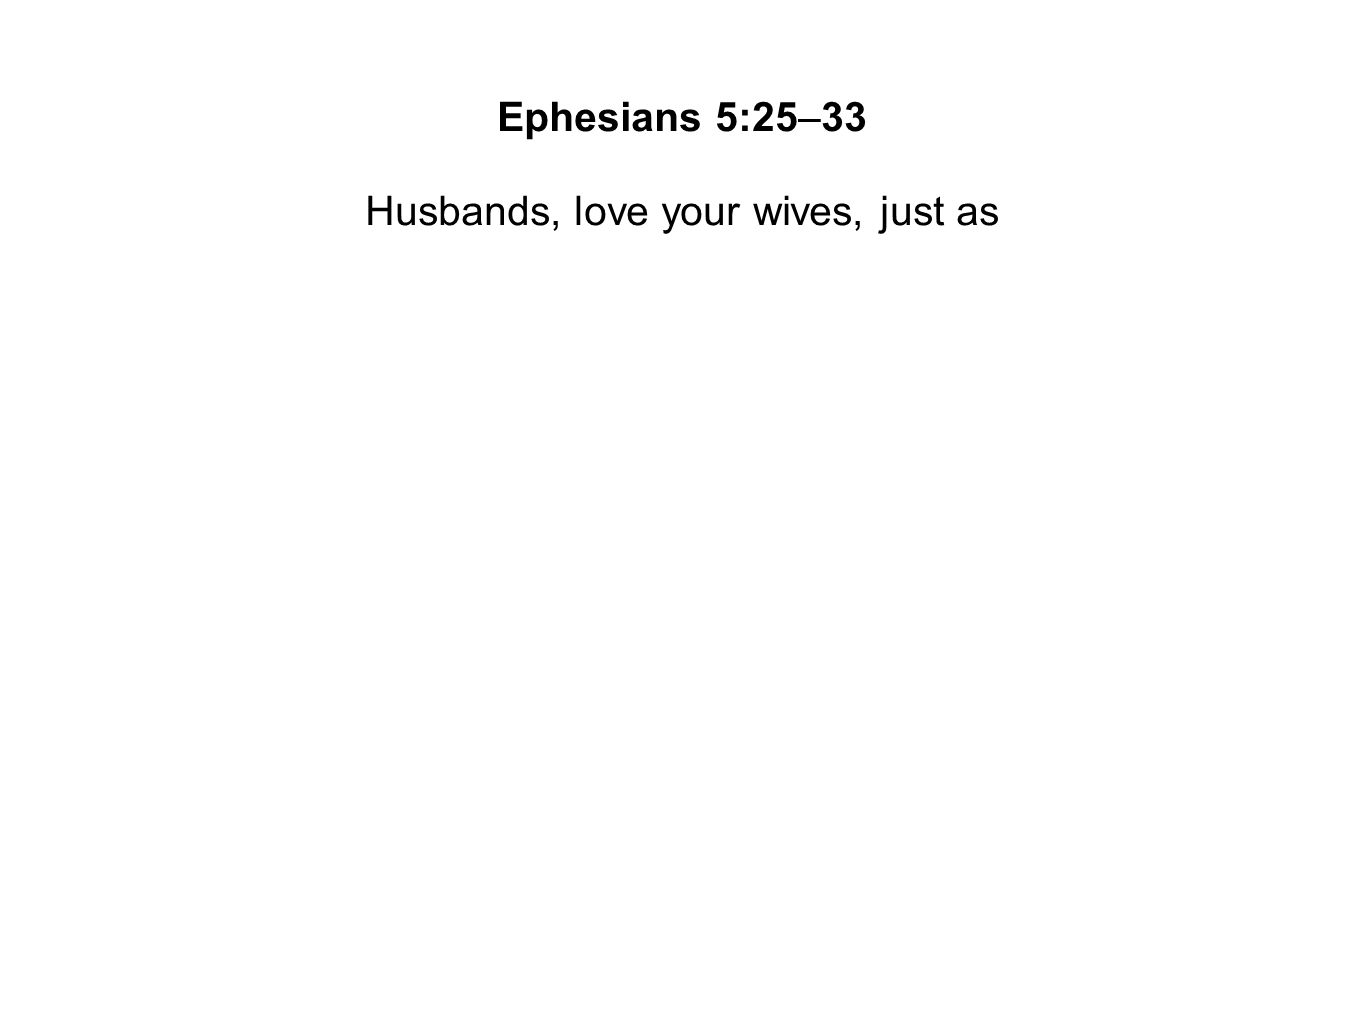 (v.28) So husbands ought also to love their own wives as their own bodies.